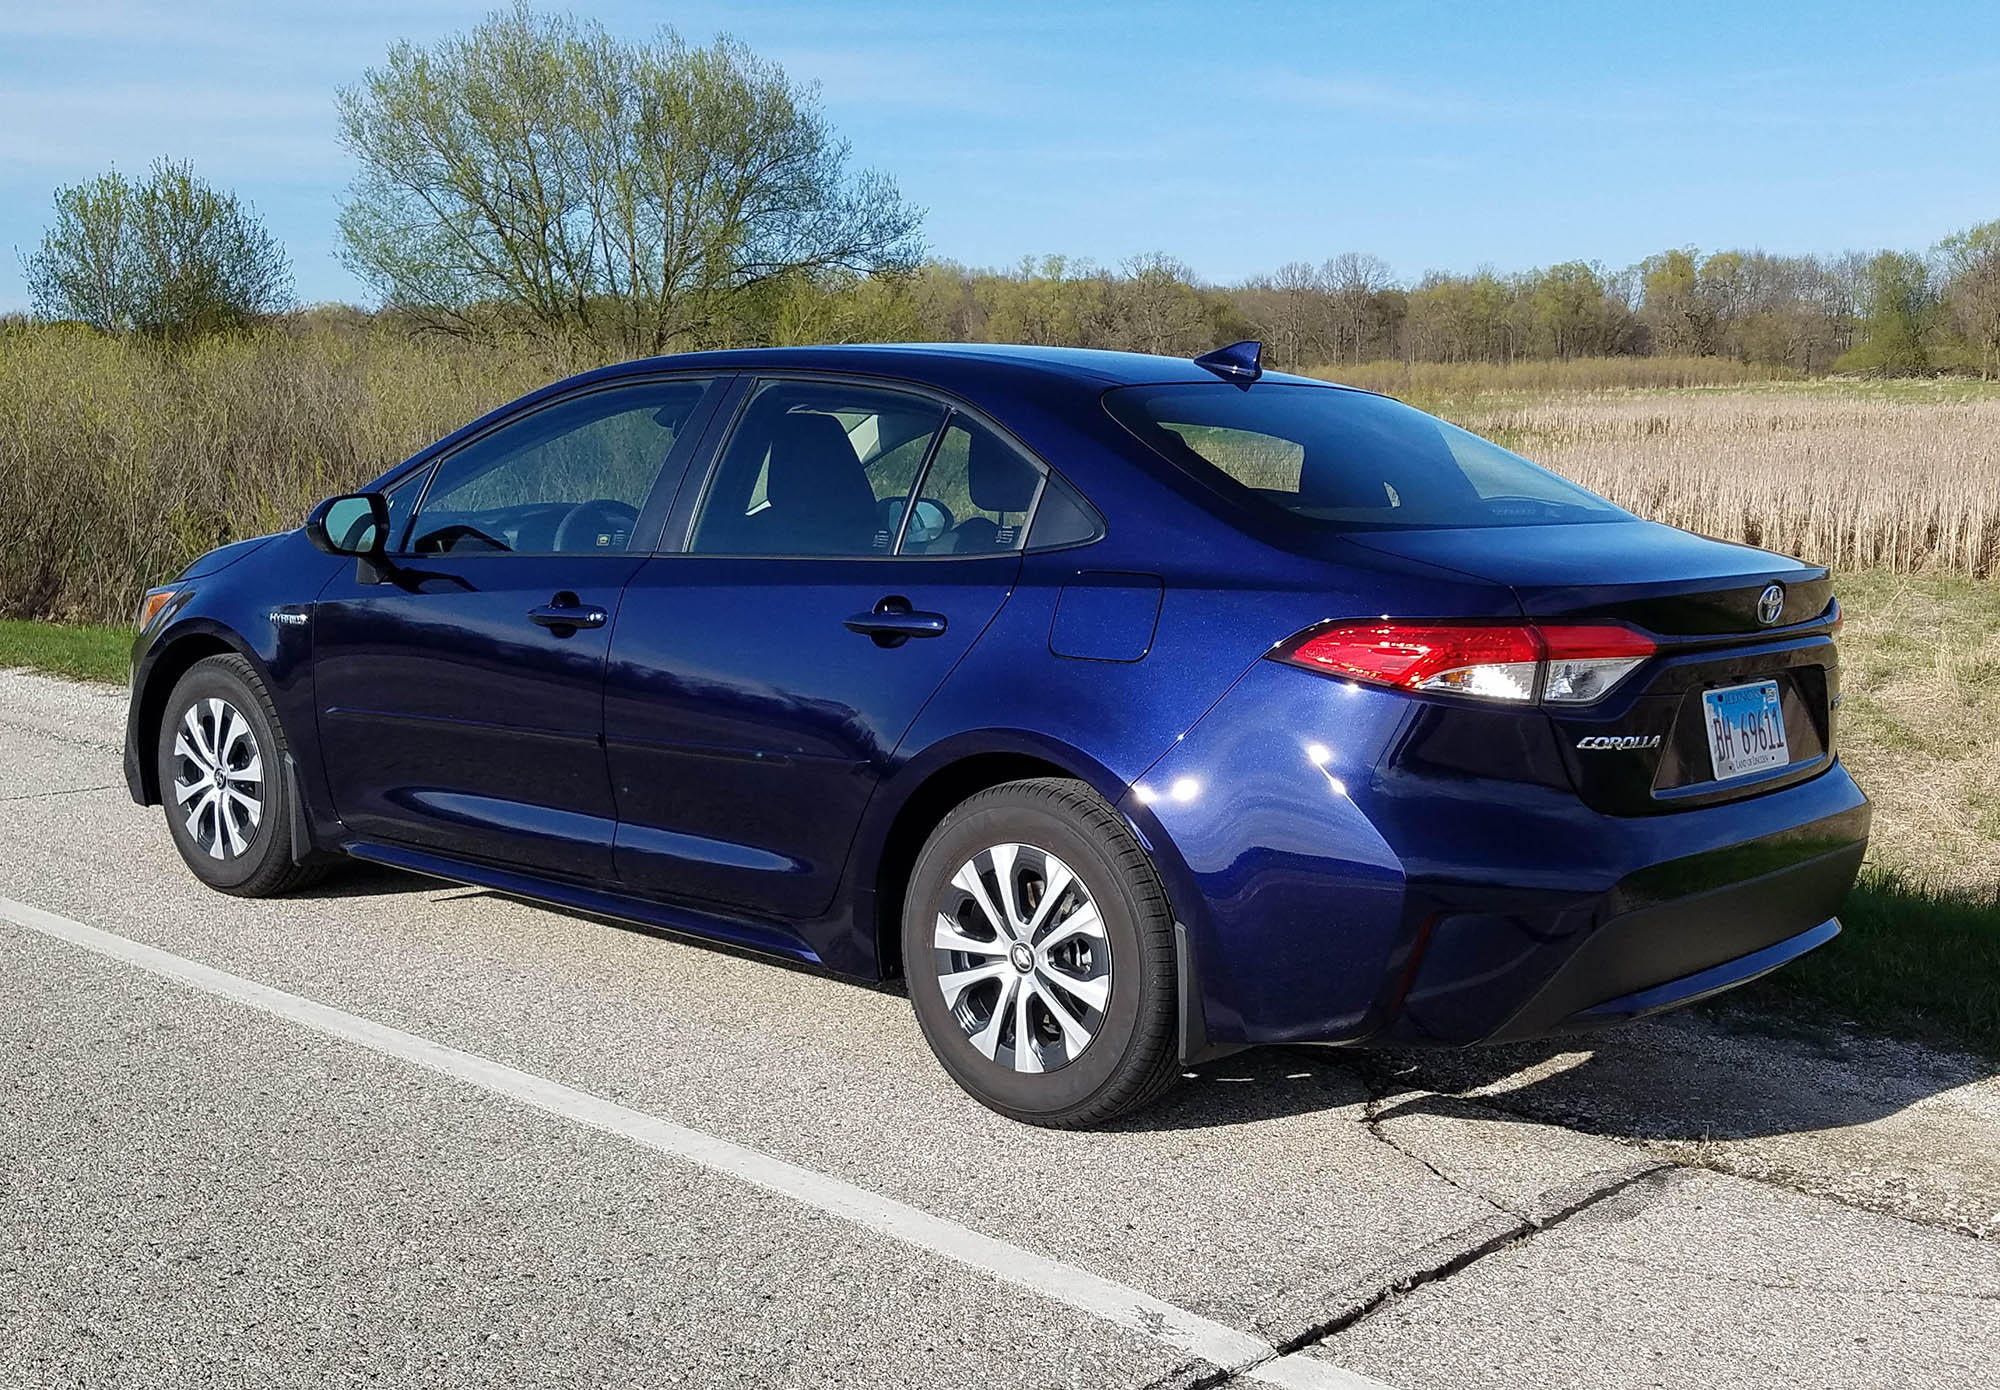 2020 Toyota Corolla LE Hybrid Review: High Value, High MPG